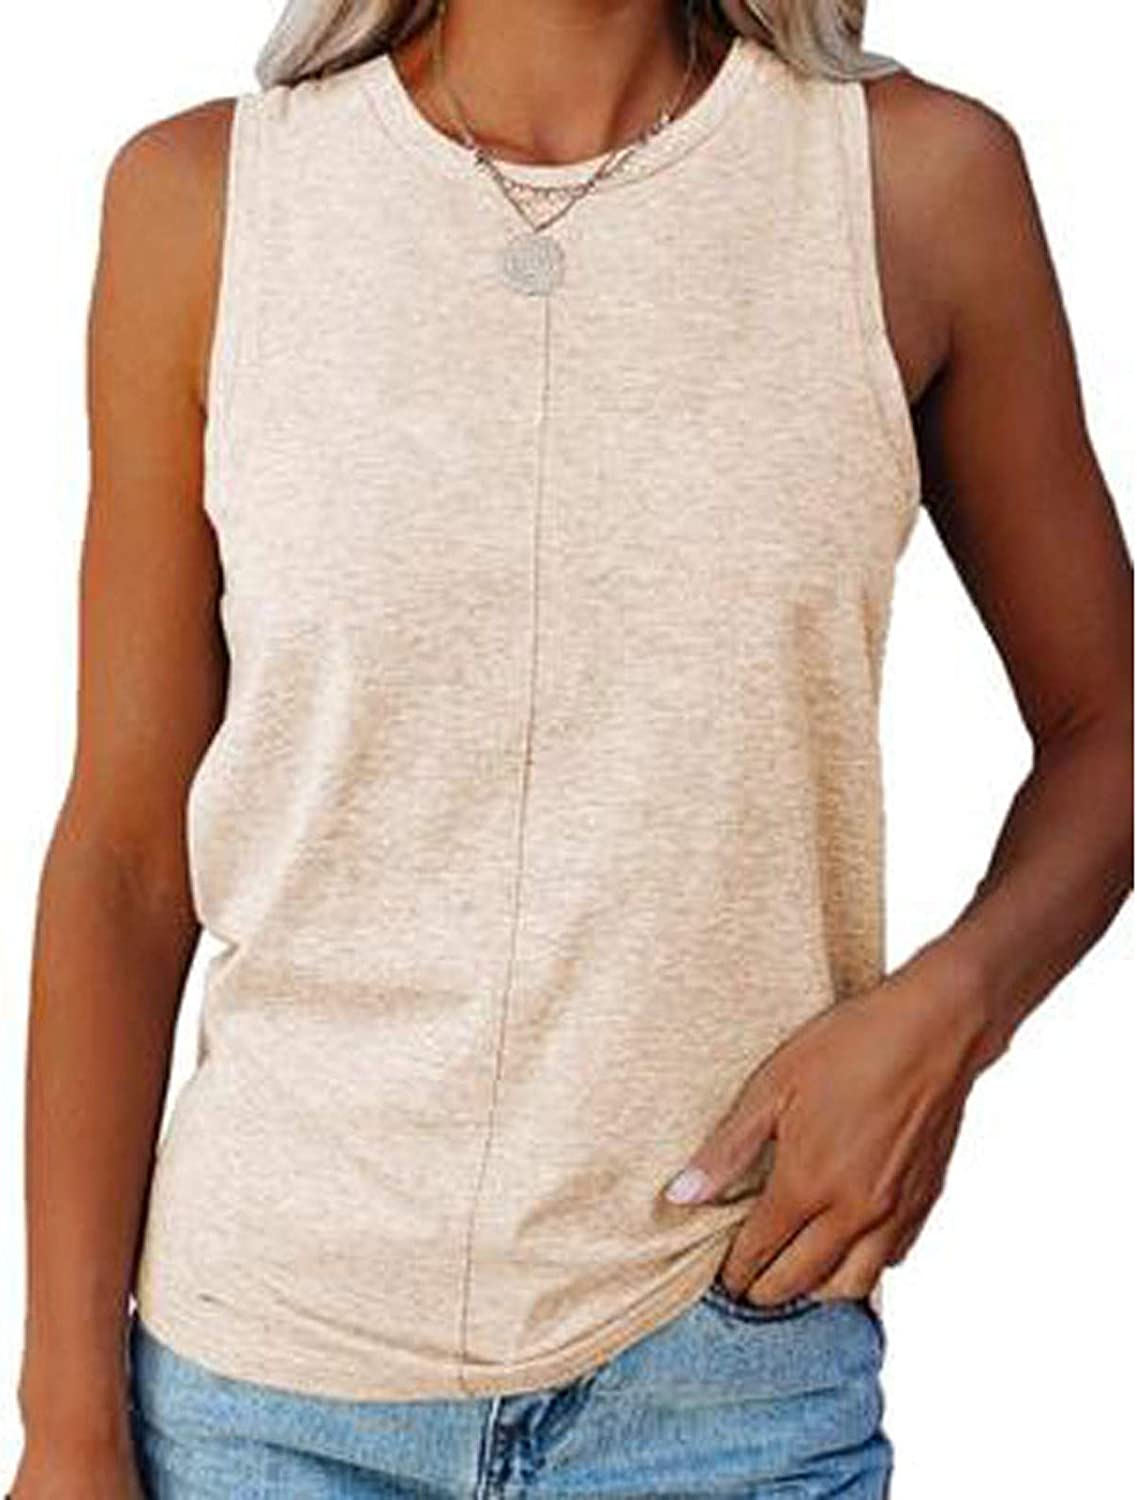 felwors Tank Tops for Women, Womens Casual Fashion Summer Holiday Sleeveless Graphic Vest Tops Tee Shirts Blouse Tops